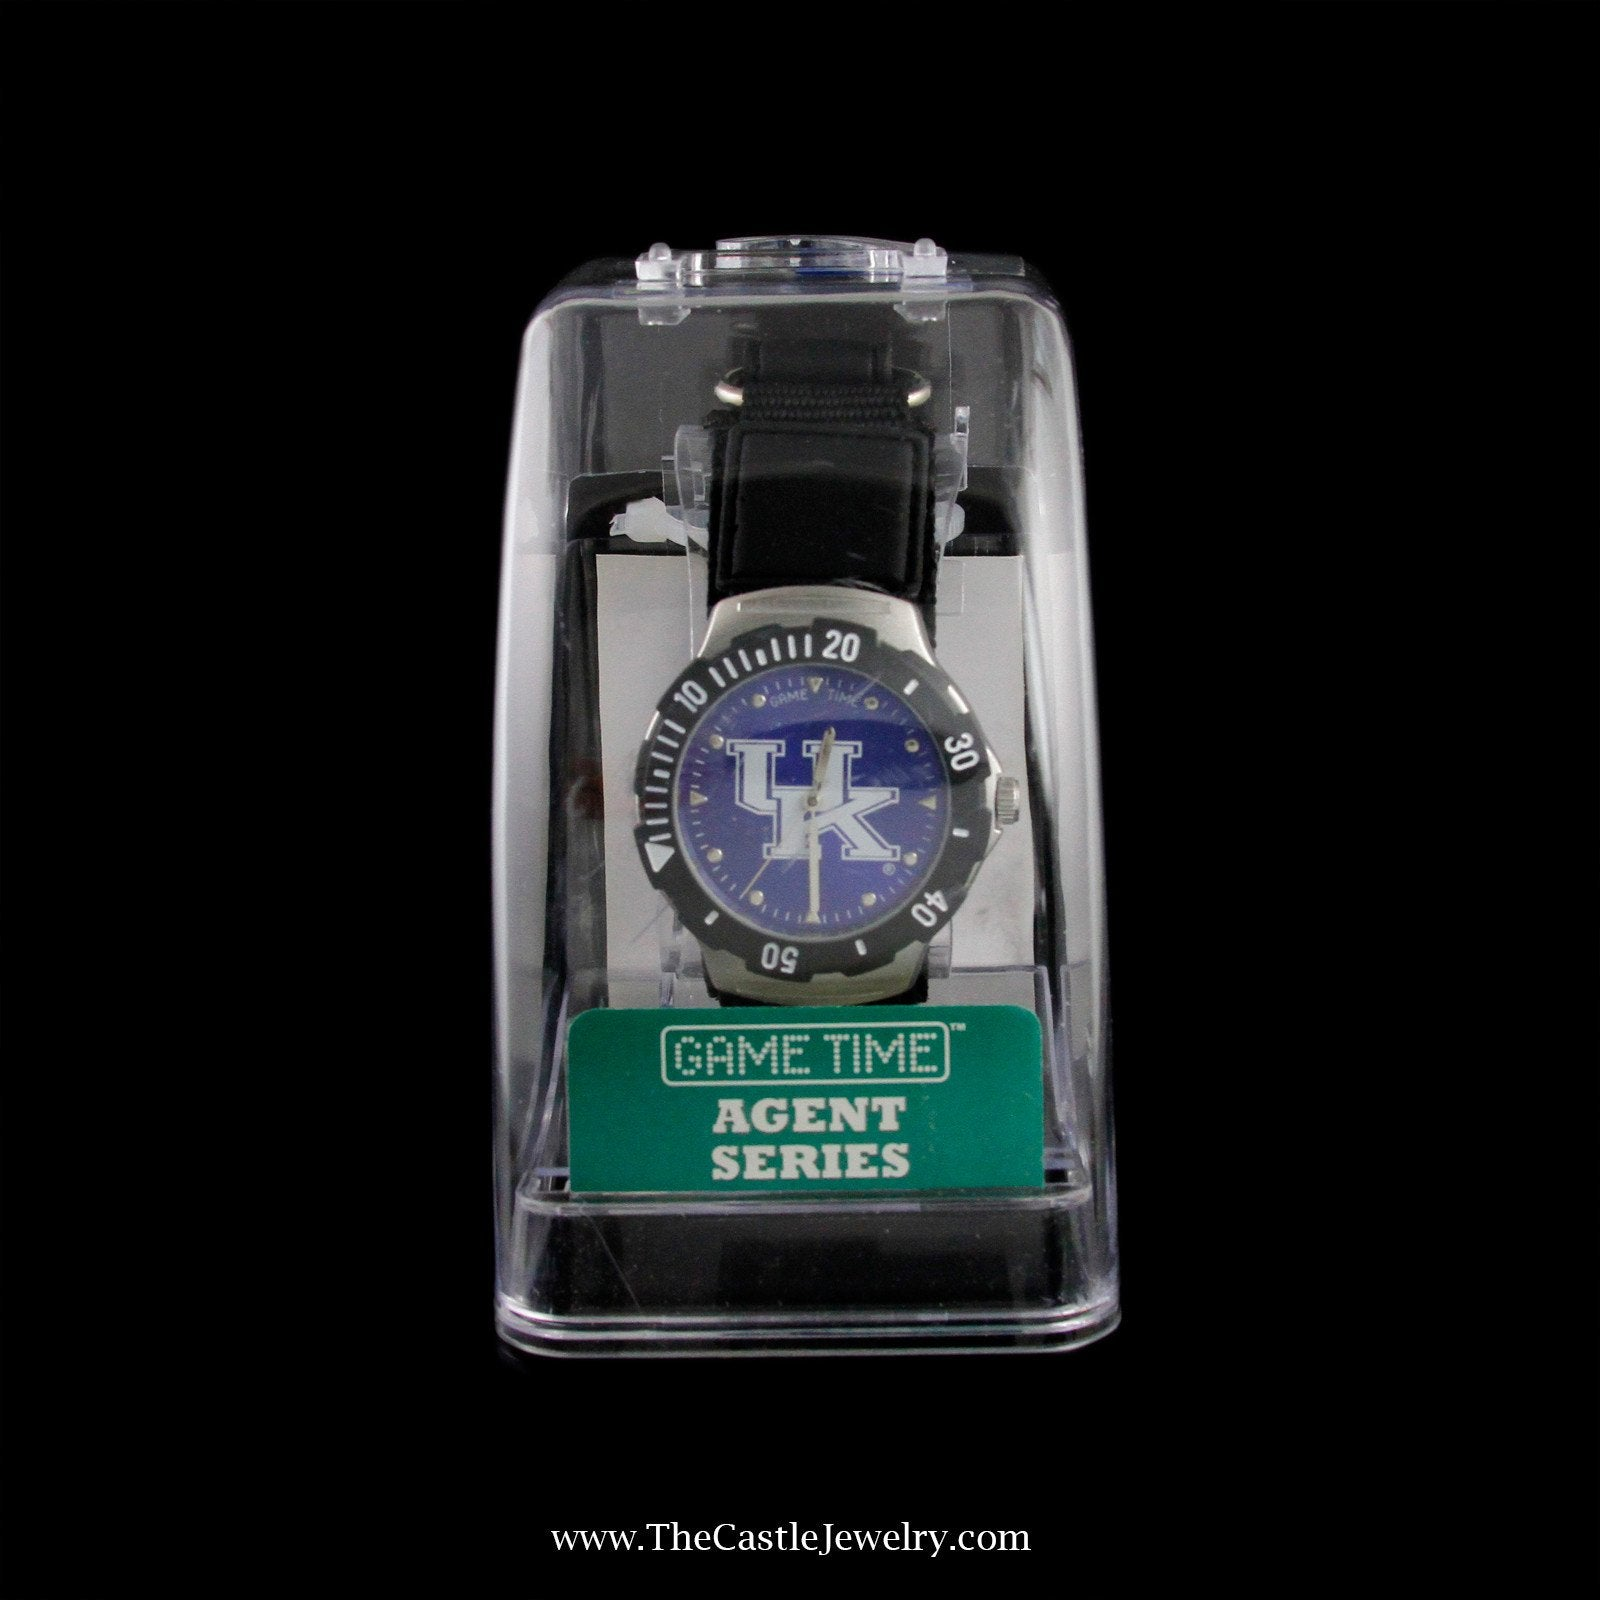 Special! Agent Series Collegiate University Of Kentucky Watch